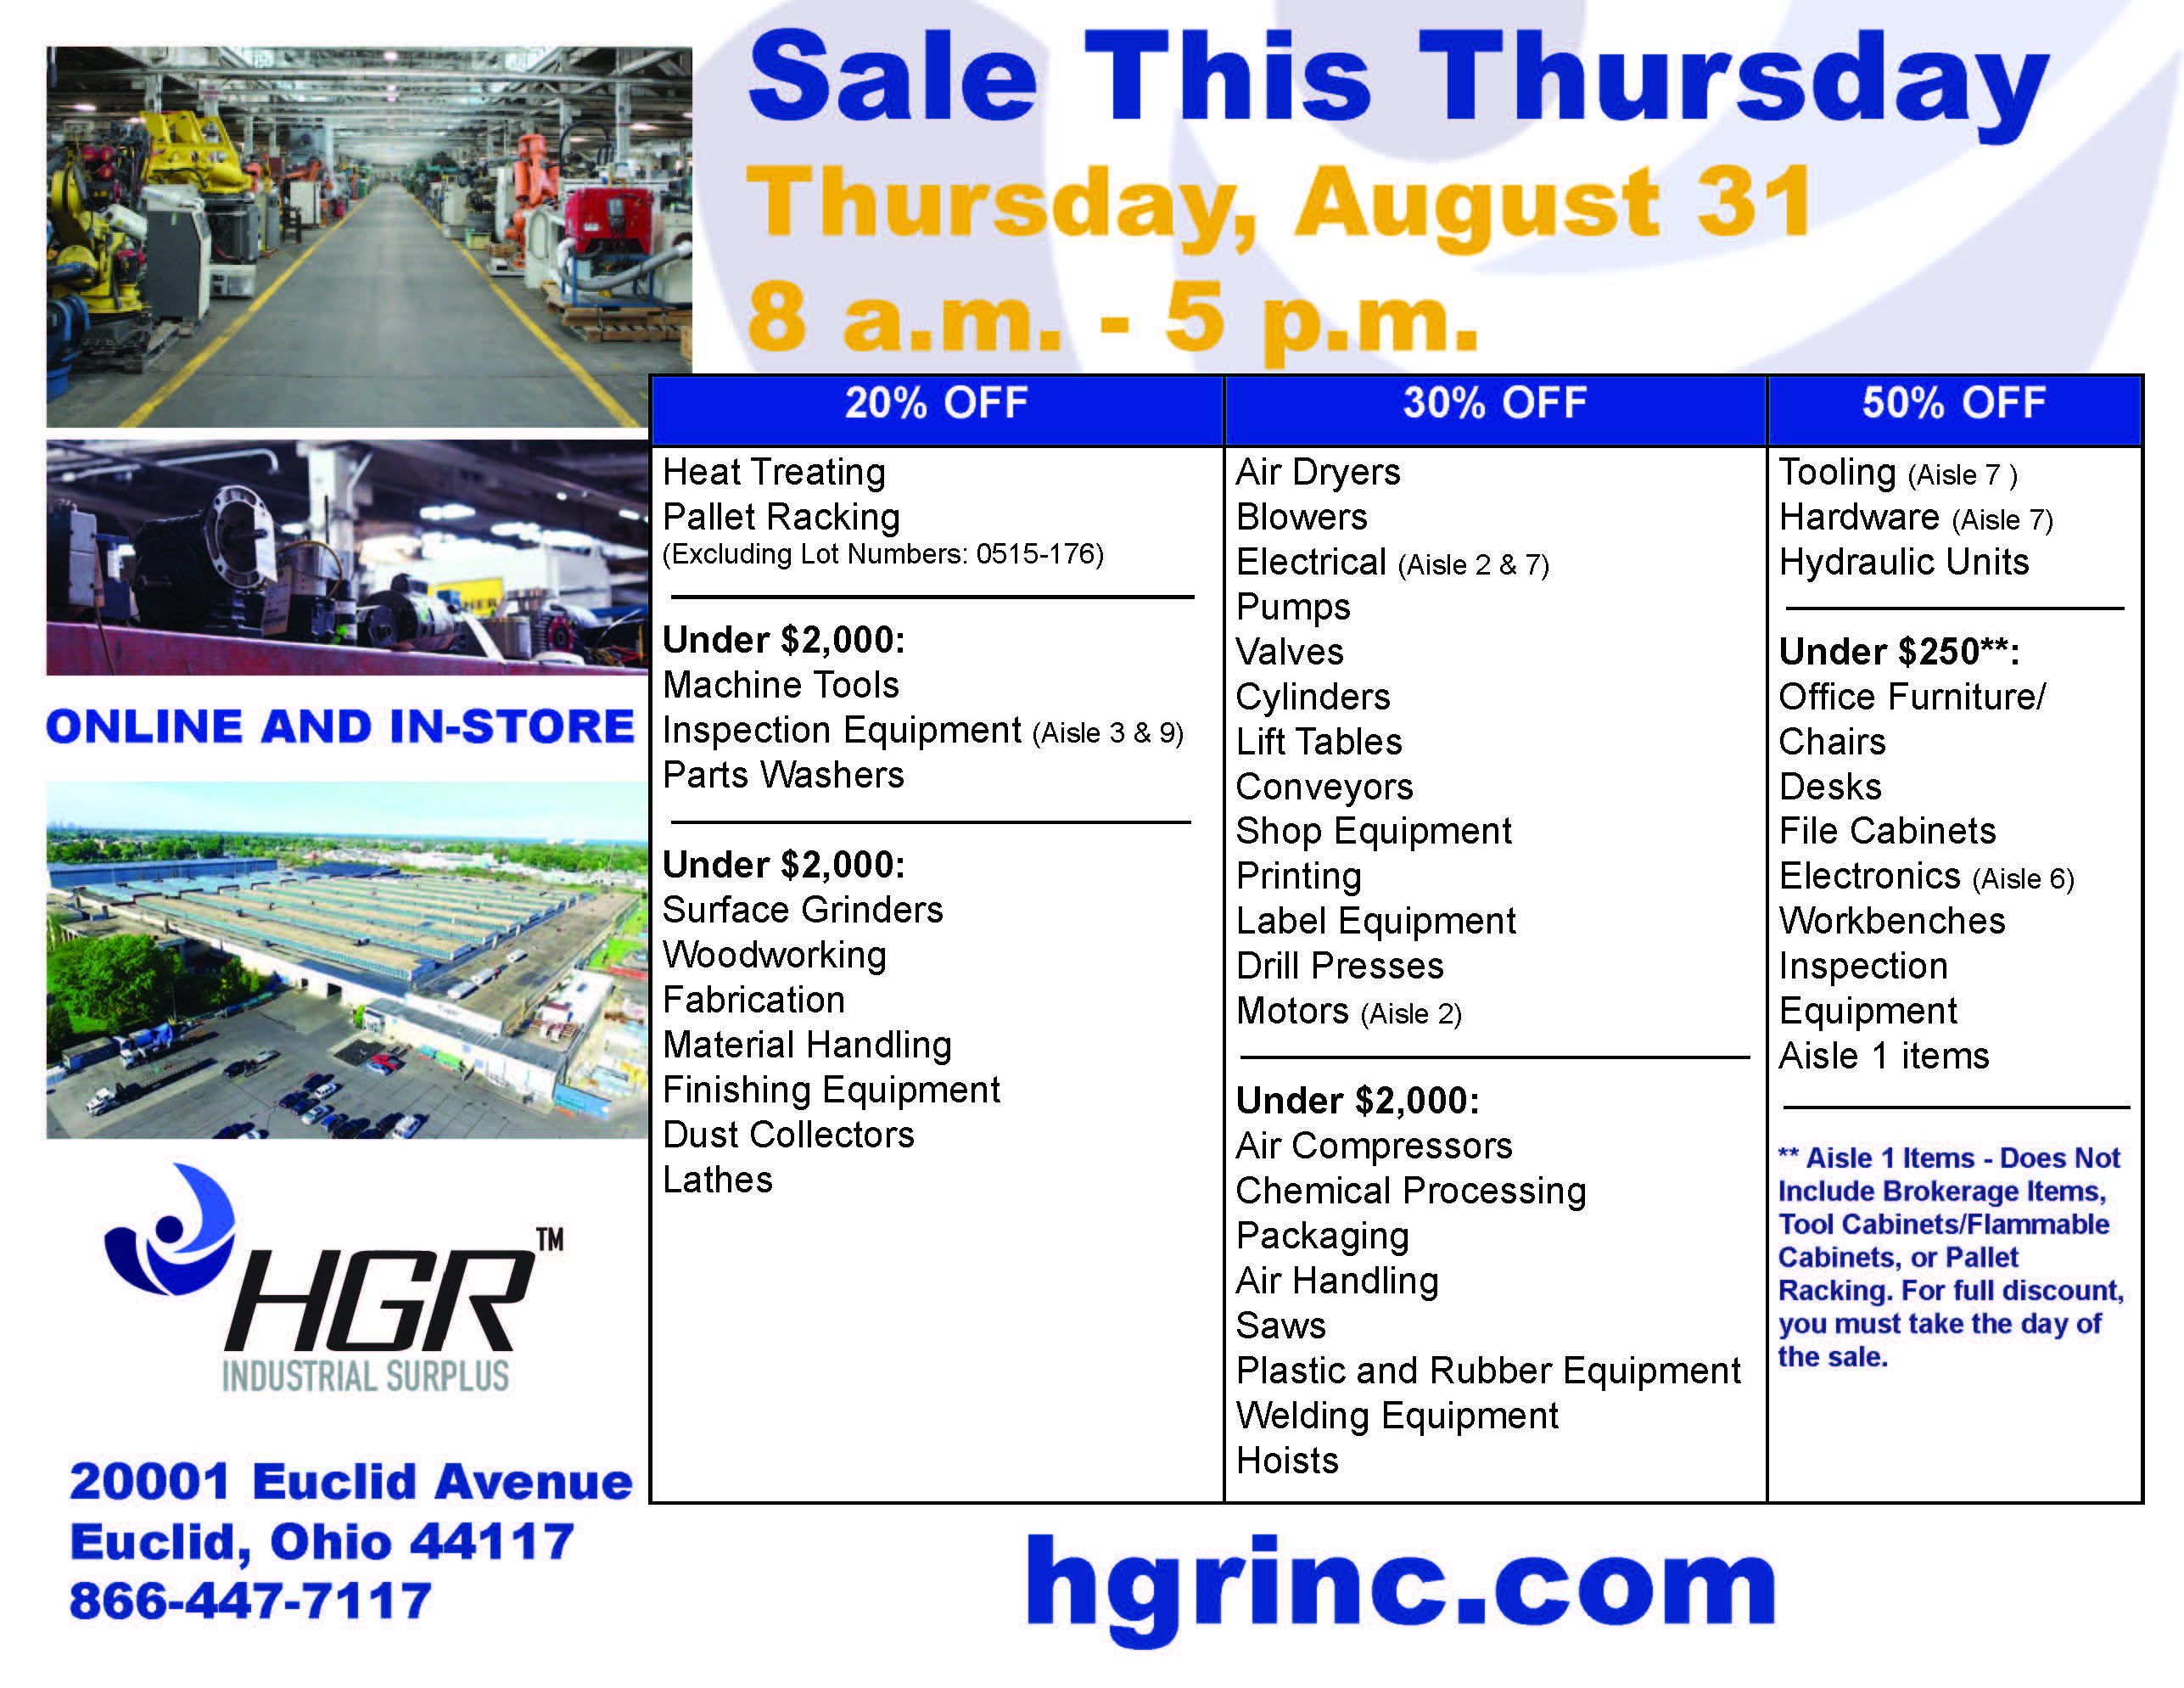 HGR Industrial Surplus Aug. 31, 2017 sale